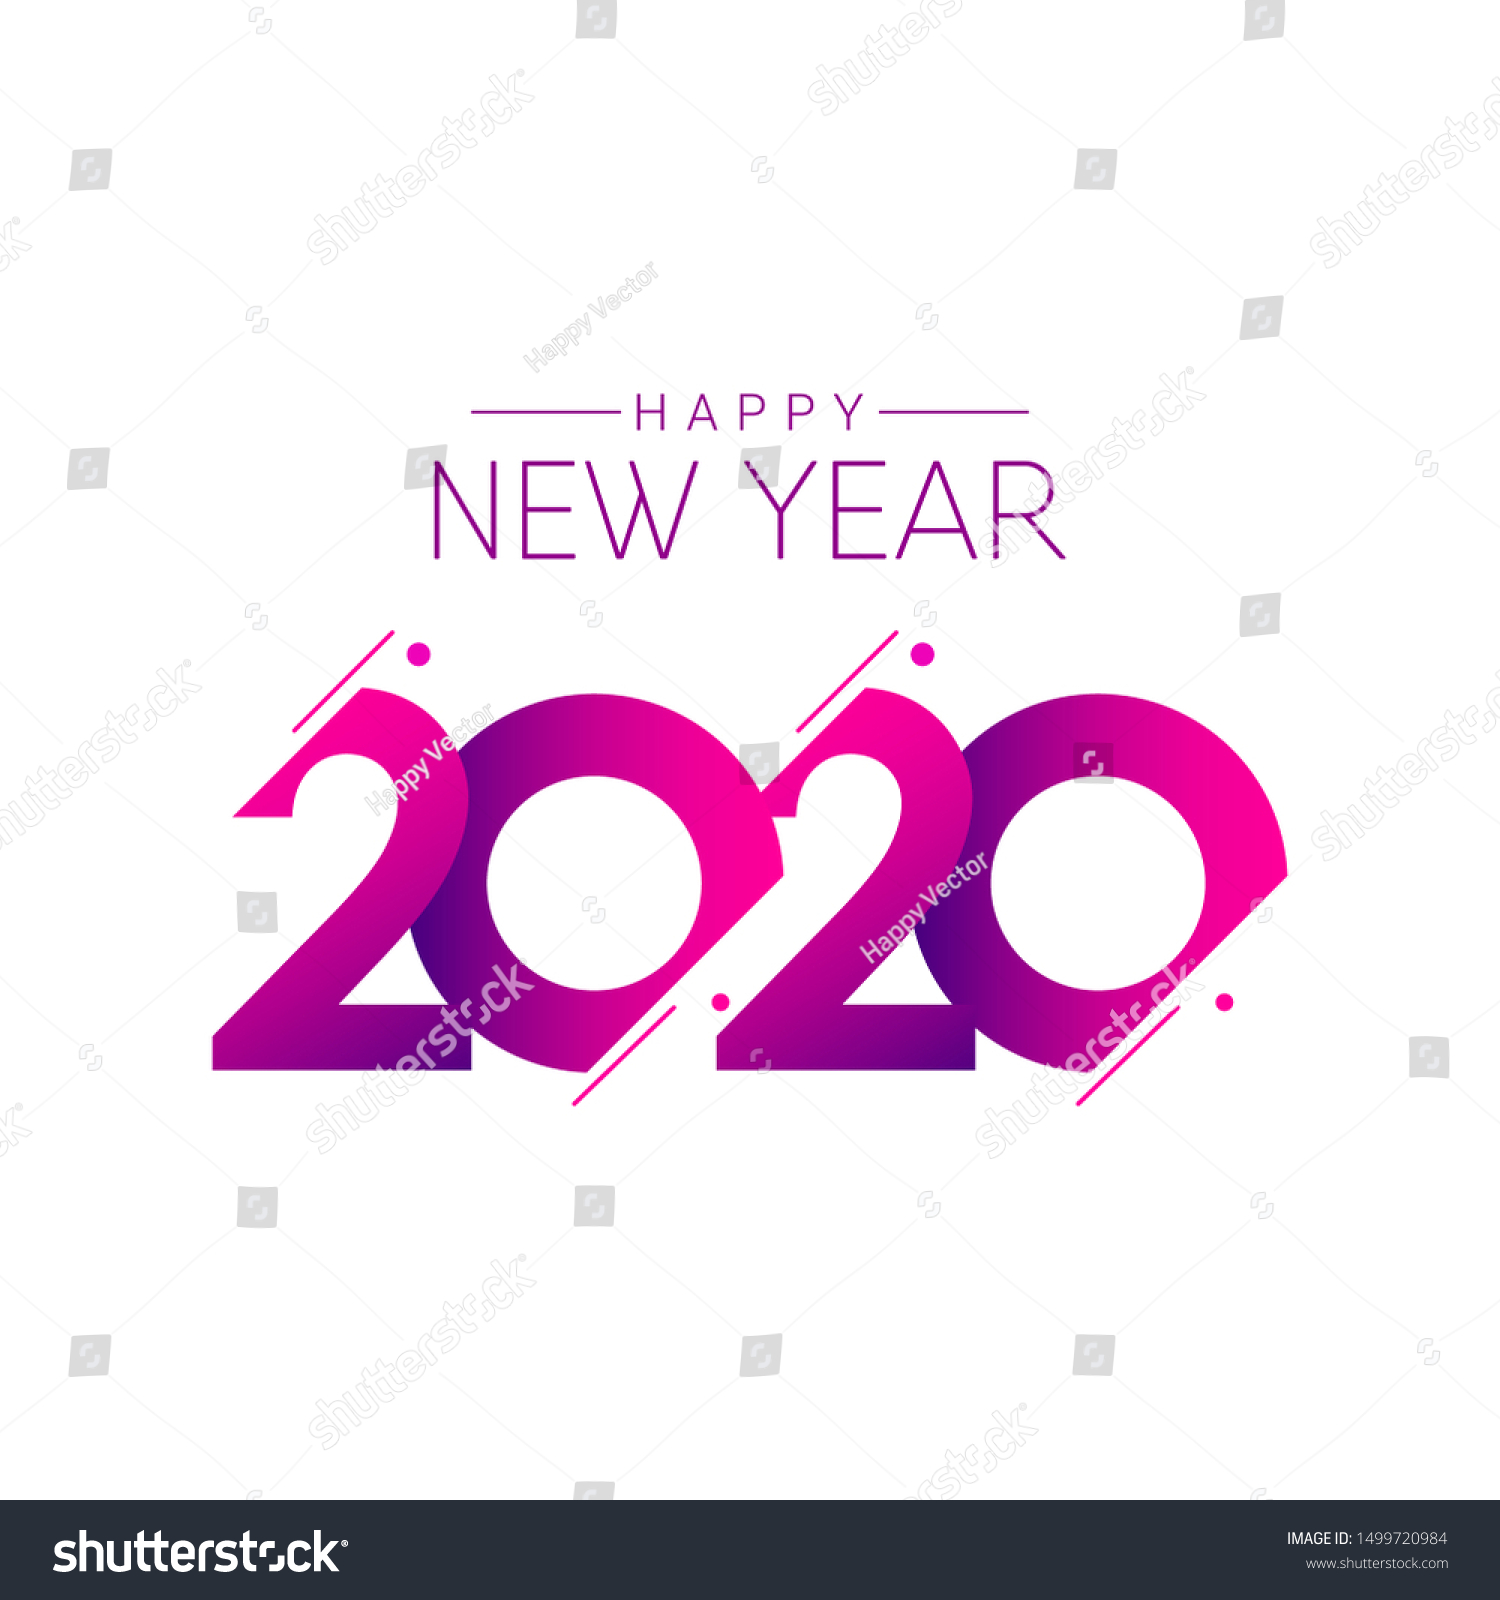 Happy New Year 2020 Vector Template Stock Vector Royalty Free 1499720984